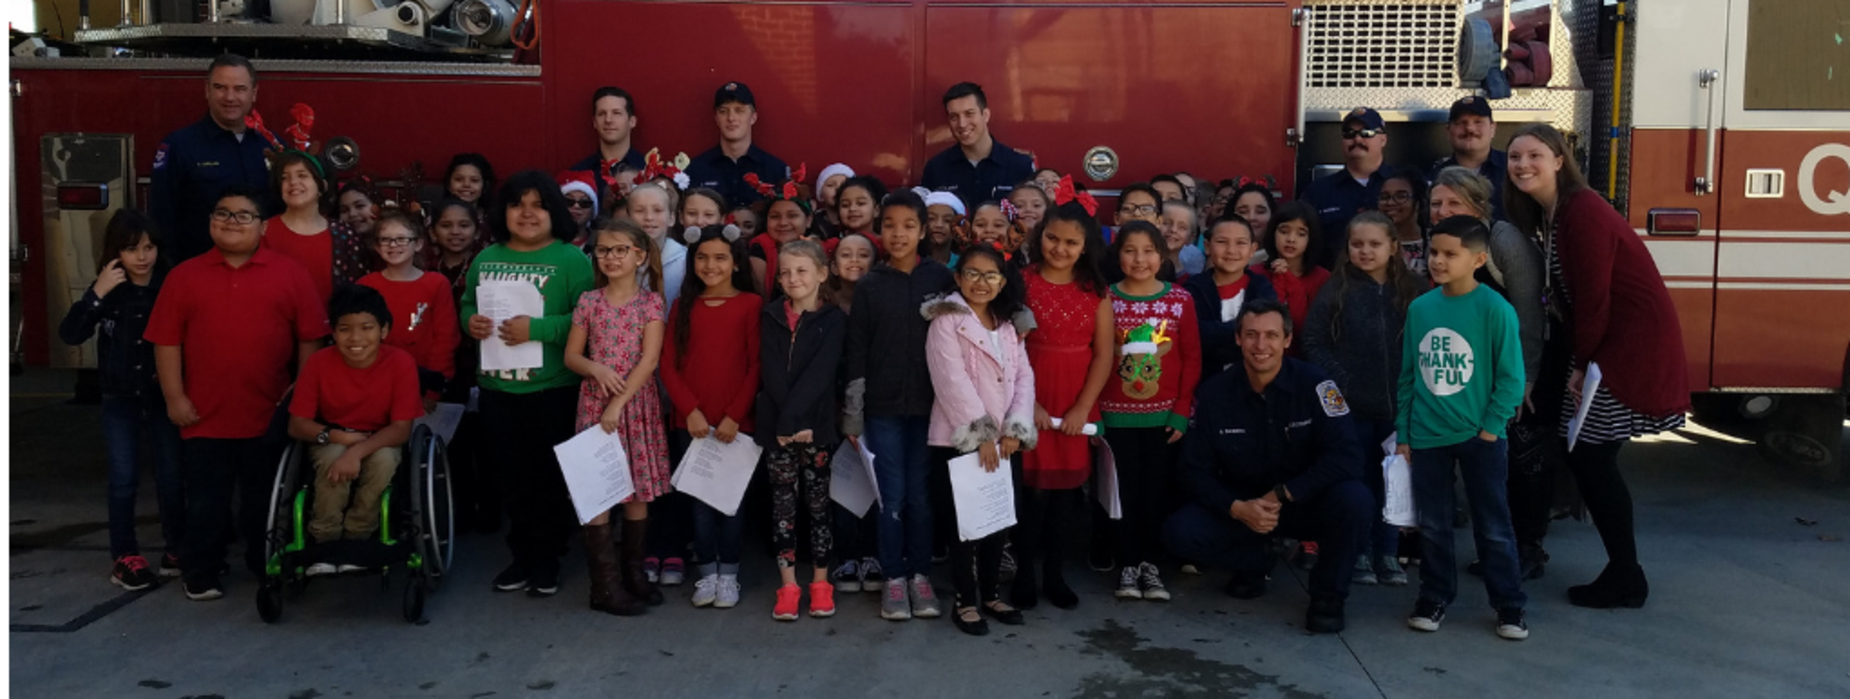 carolers and fire truck